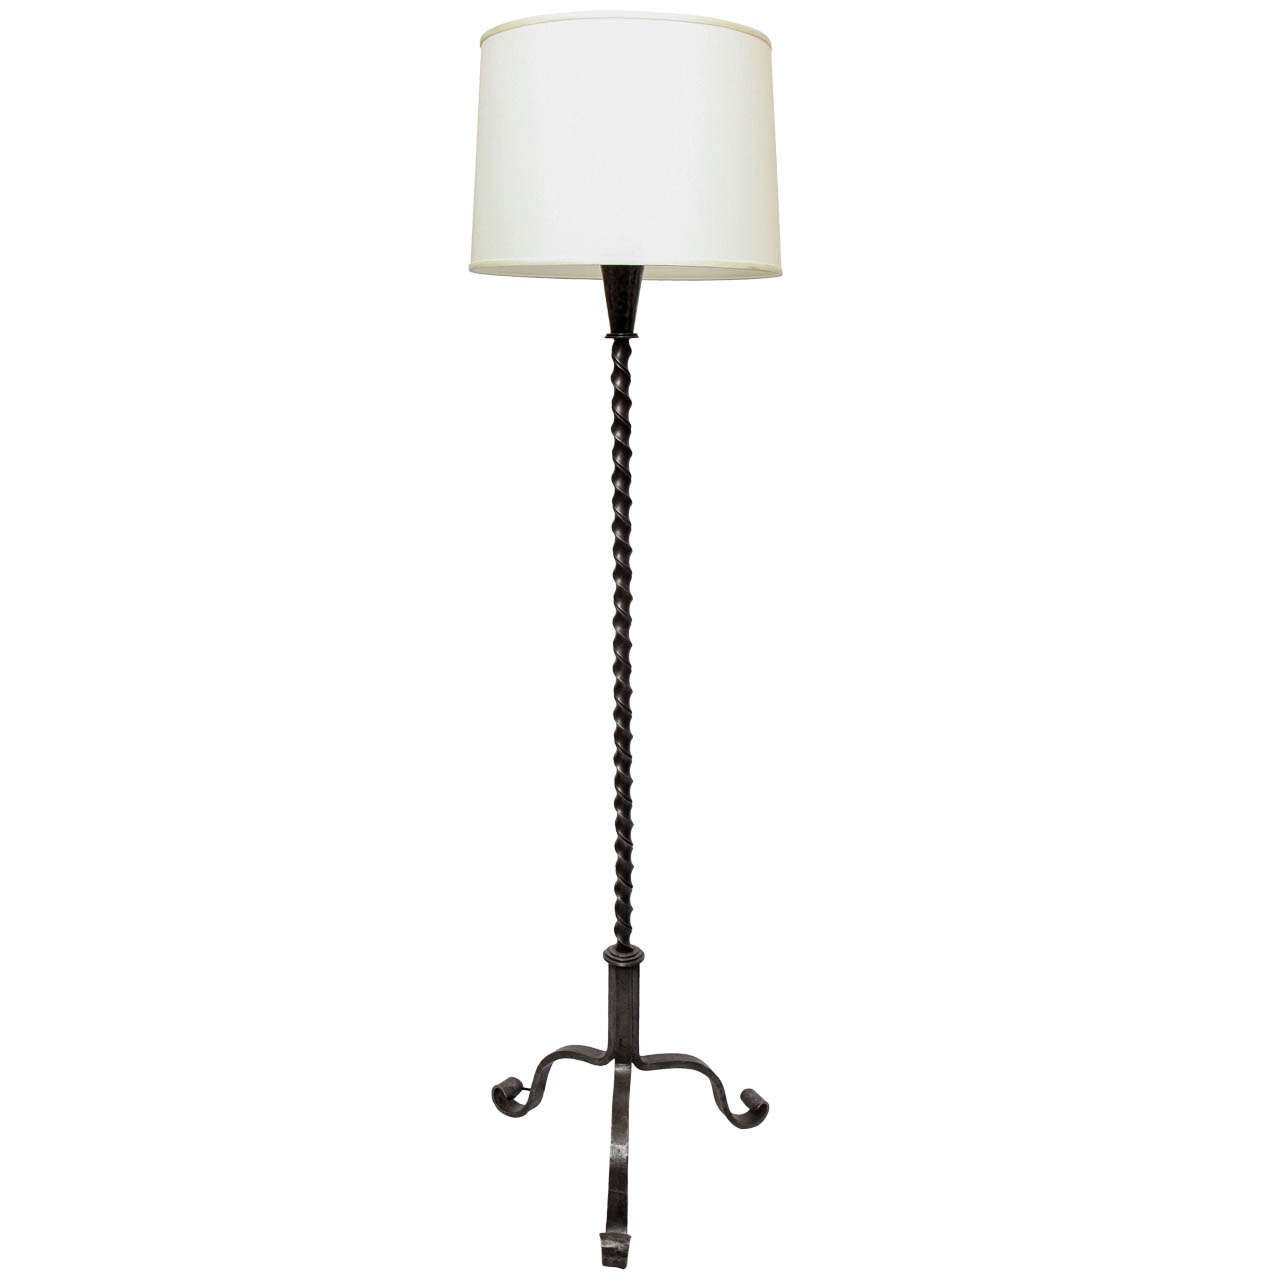 1940s French Art Moderne Wrought Iron Floor Lamp For Sale